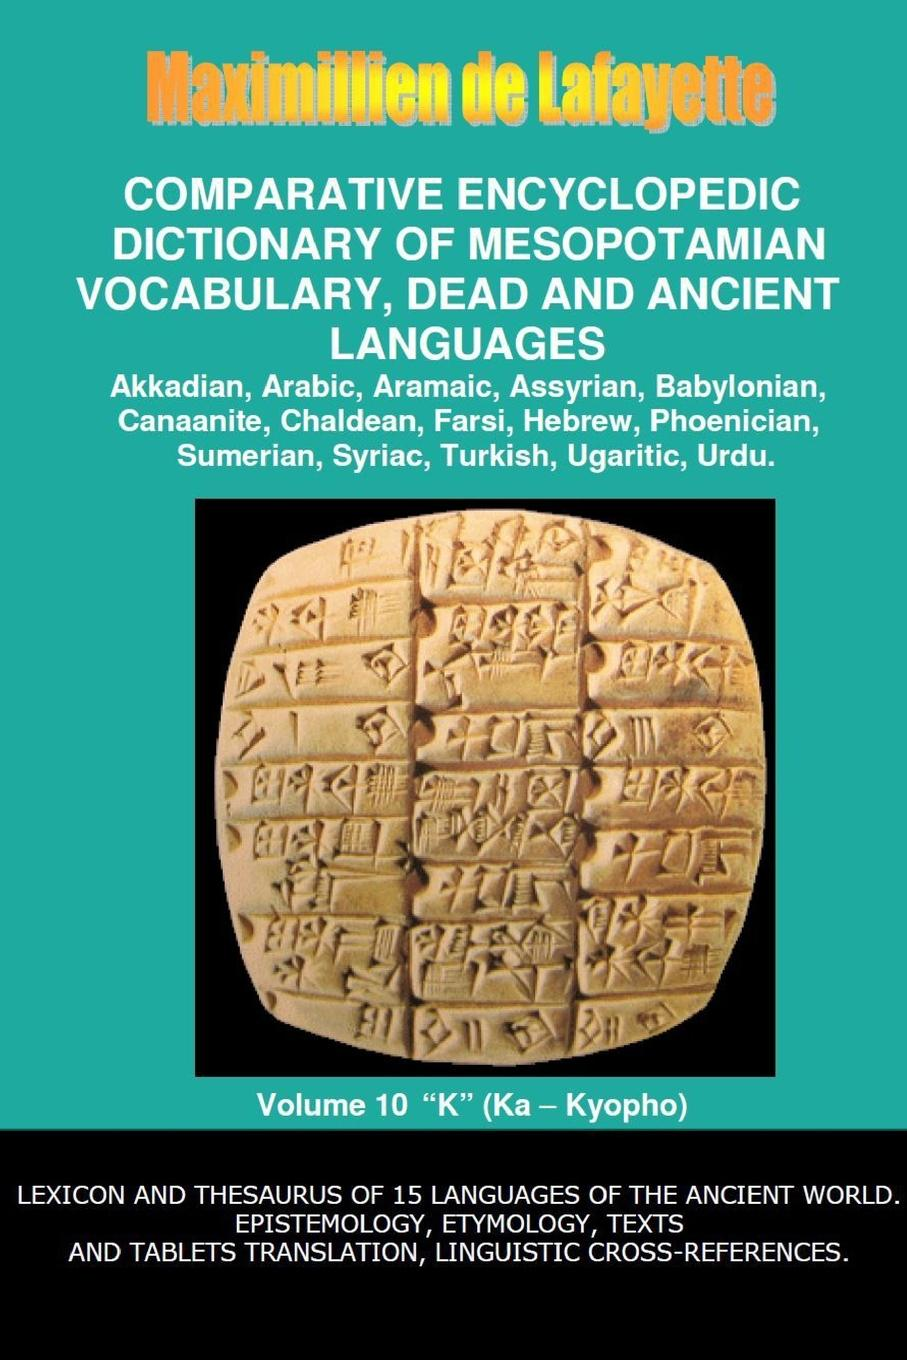 Maximillien De Lafayette V10.Comparative Encyclopedic Dictionary of Mesopotamian Vocabulary Dead . Ancient Languages larry a nichols george a mather alvin j schmidt encyclopedic dictionary of cults sects and world religions